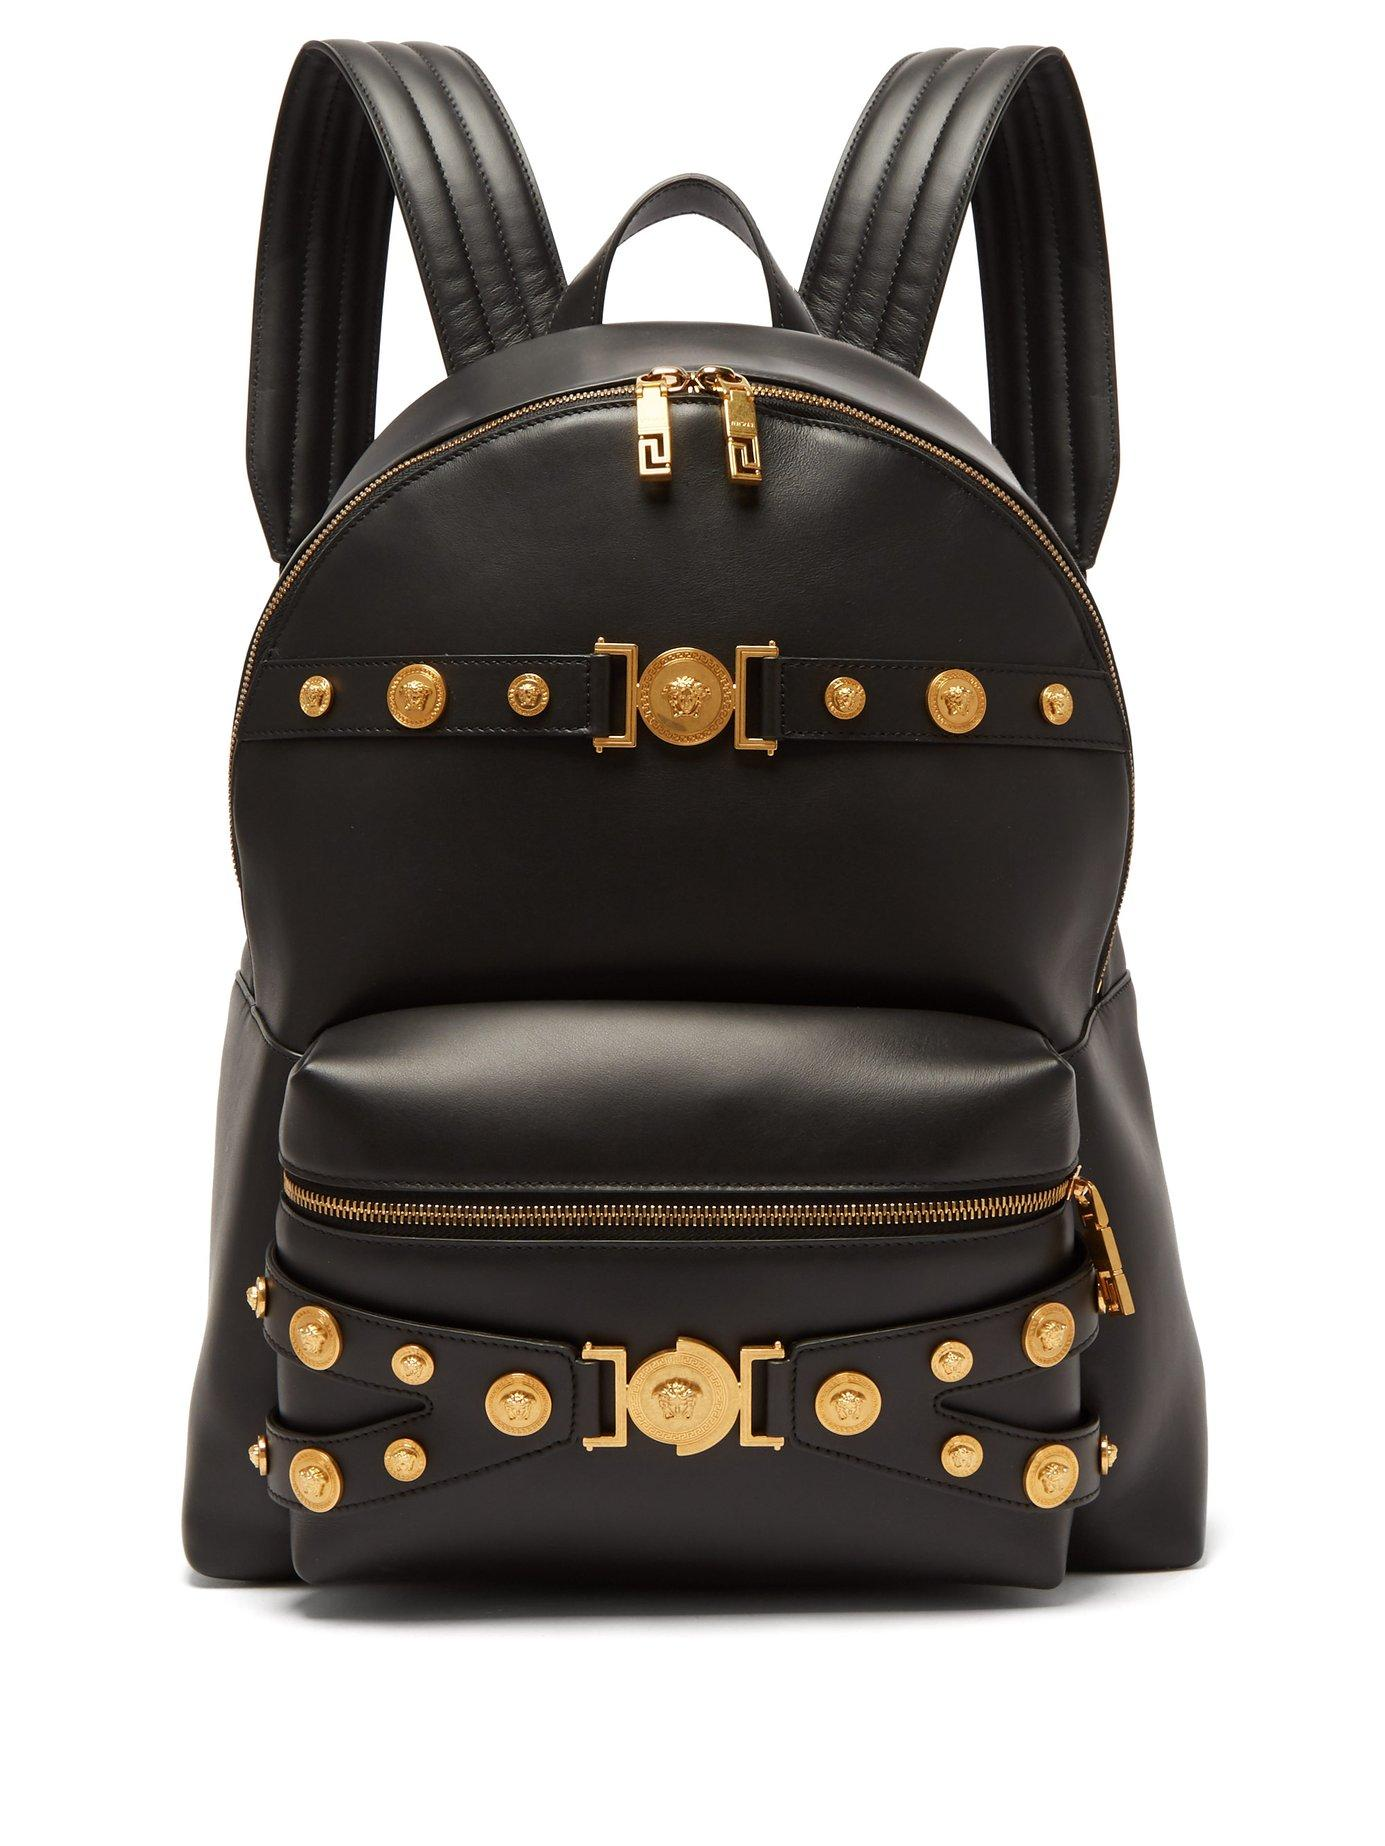 Lyst - Versace Medusa Head Leather Backpack in Black for Men f9154f75aad2c